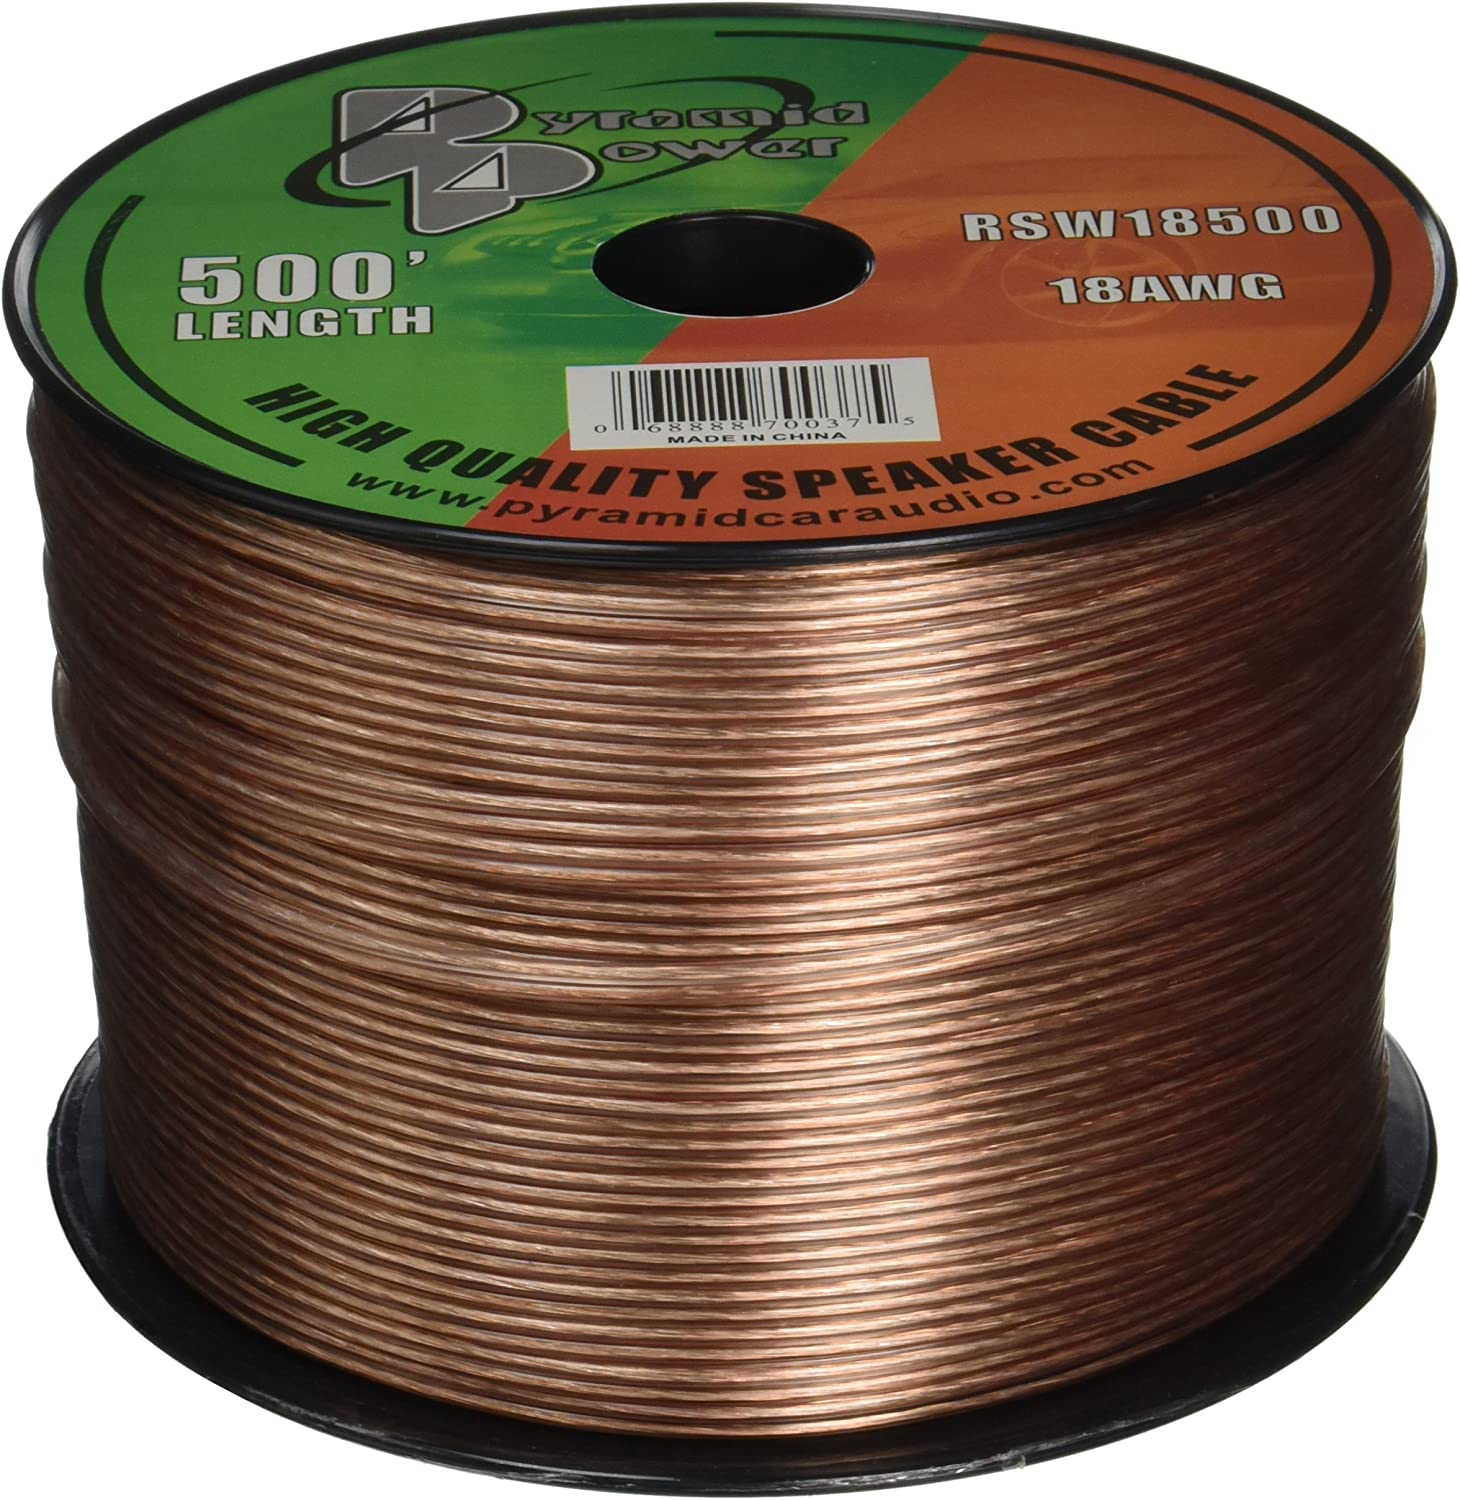 500ft 18 Gauge Speaker Wire - Copper Cable in Spool for Connecting Audio Stereo to Amplifier, Surround Sound System, TV Home Theater and Car Stereo - Pyramid RSW18500